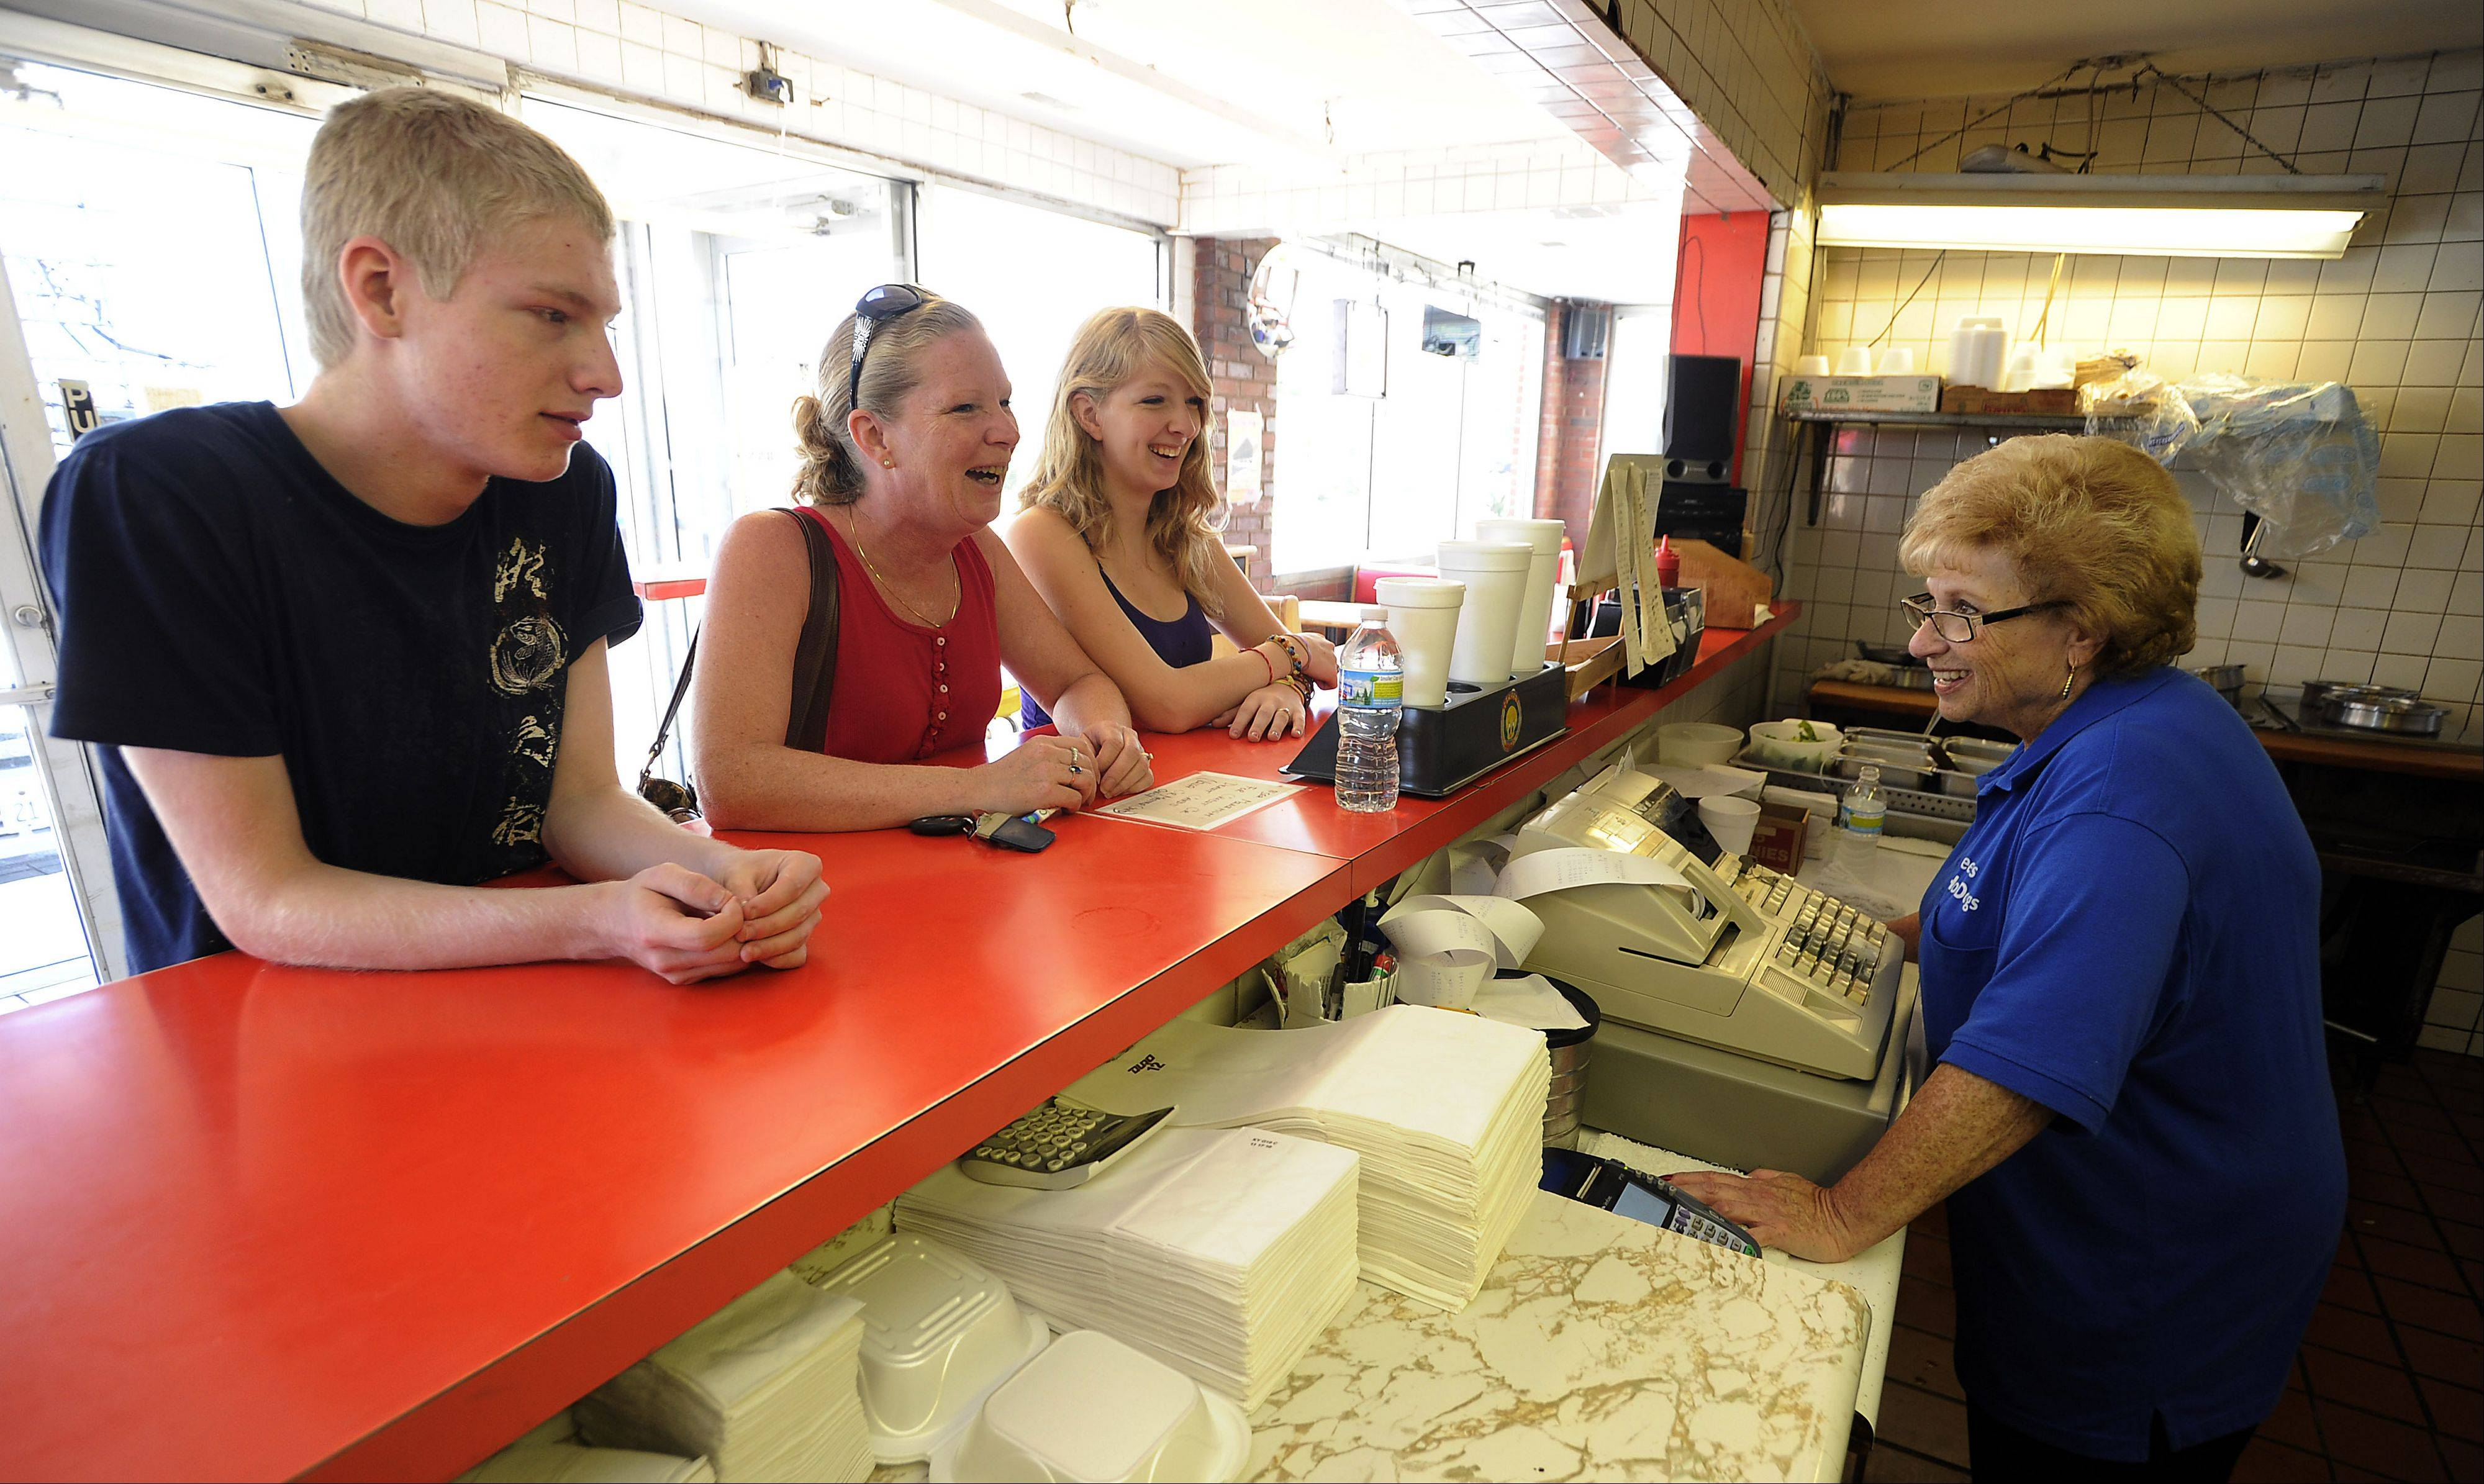 Owner Sharon Rossman is closing Peep's Hot Dogs near Hersey High School. Cindy Barnett and her daughter Laura, 16, and son, Mitch, 14, were disappointed Thursday to hear the news.